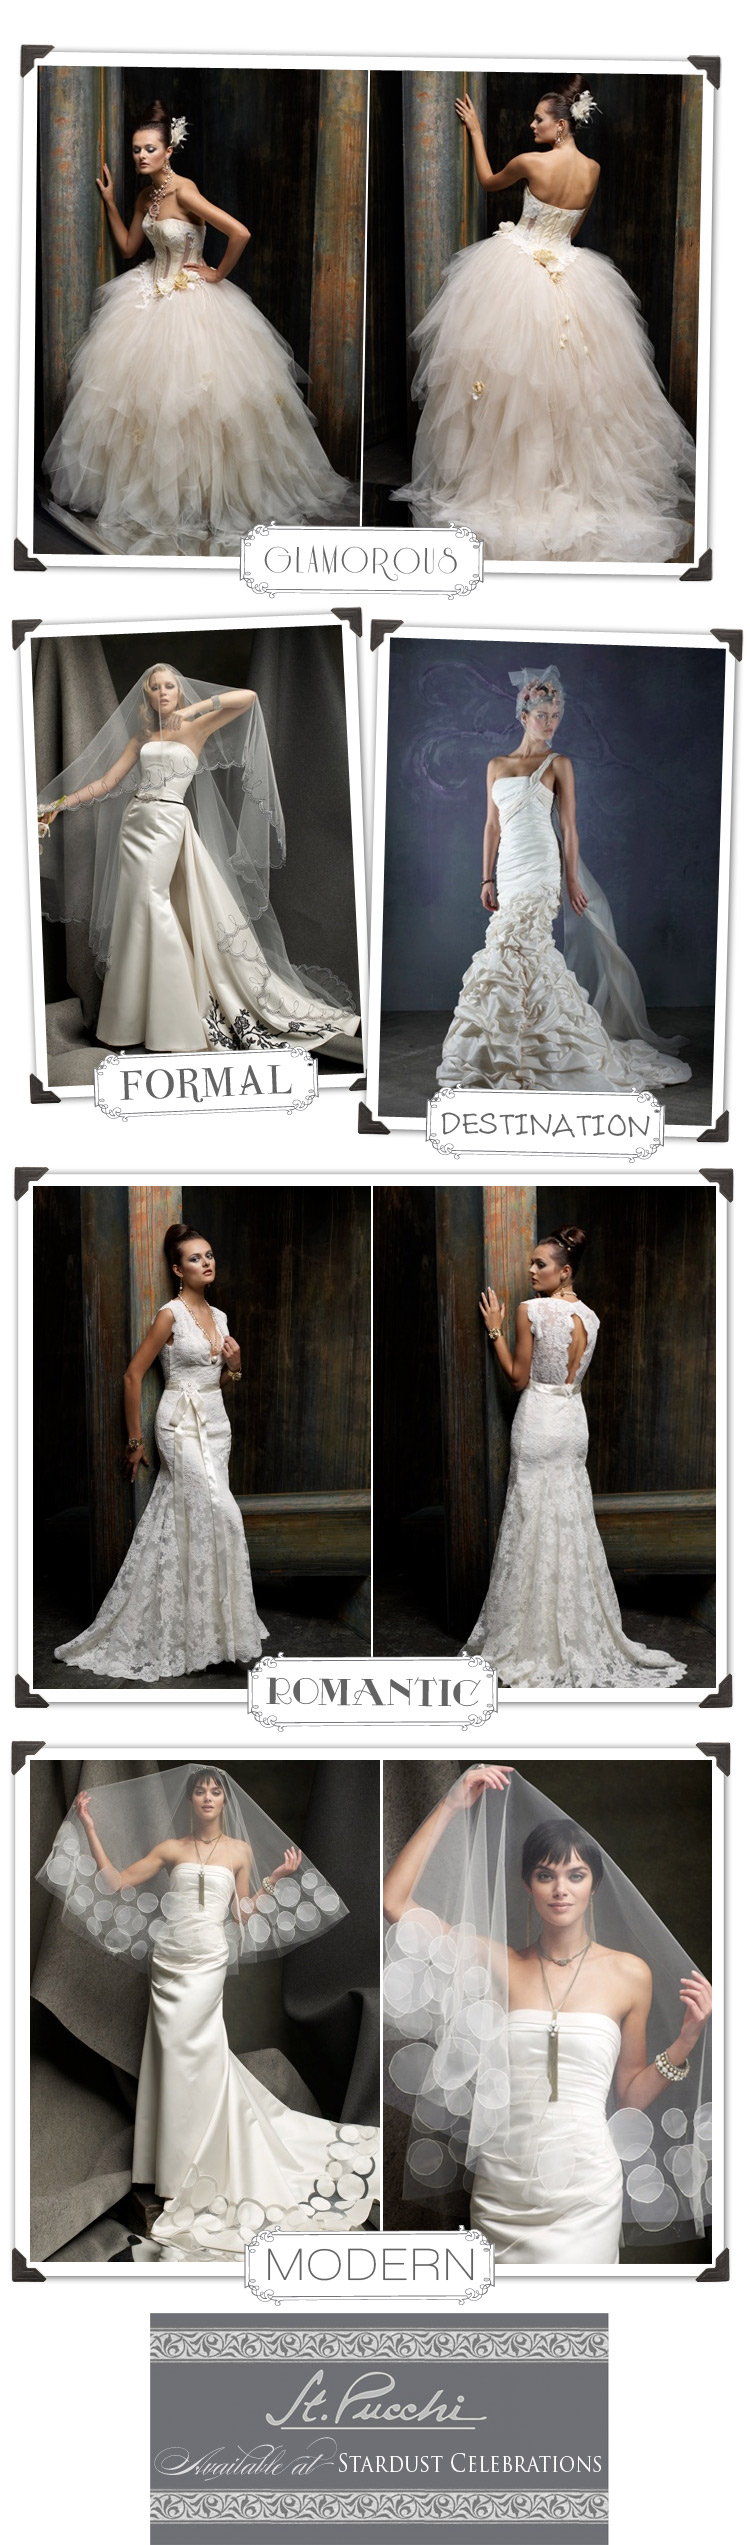 St. Pucchi wedding gowns - Stardust Celebrations in Texas